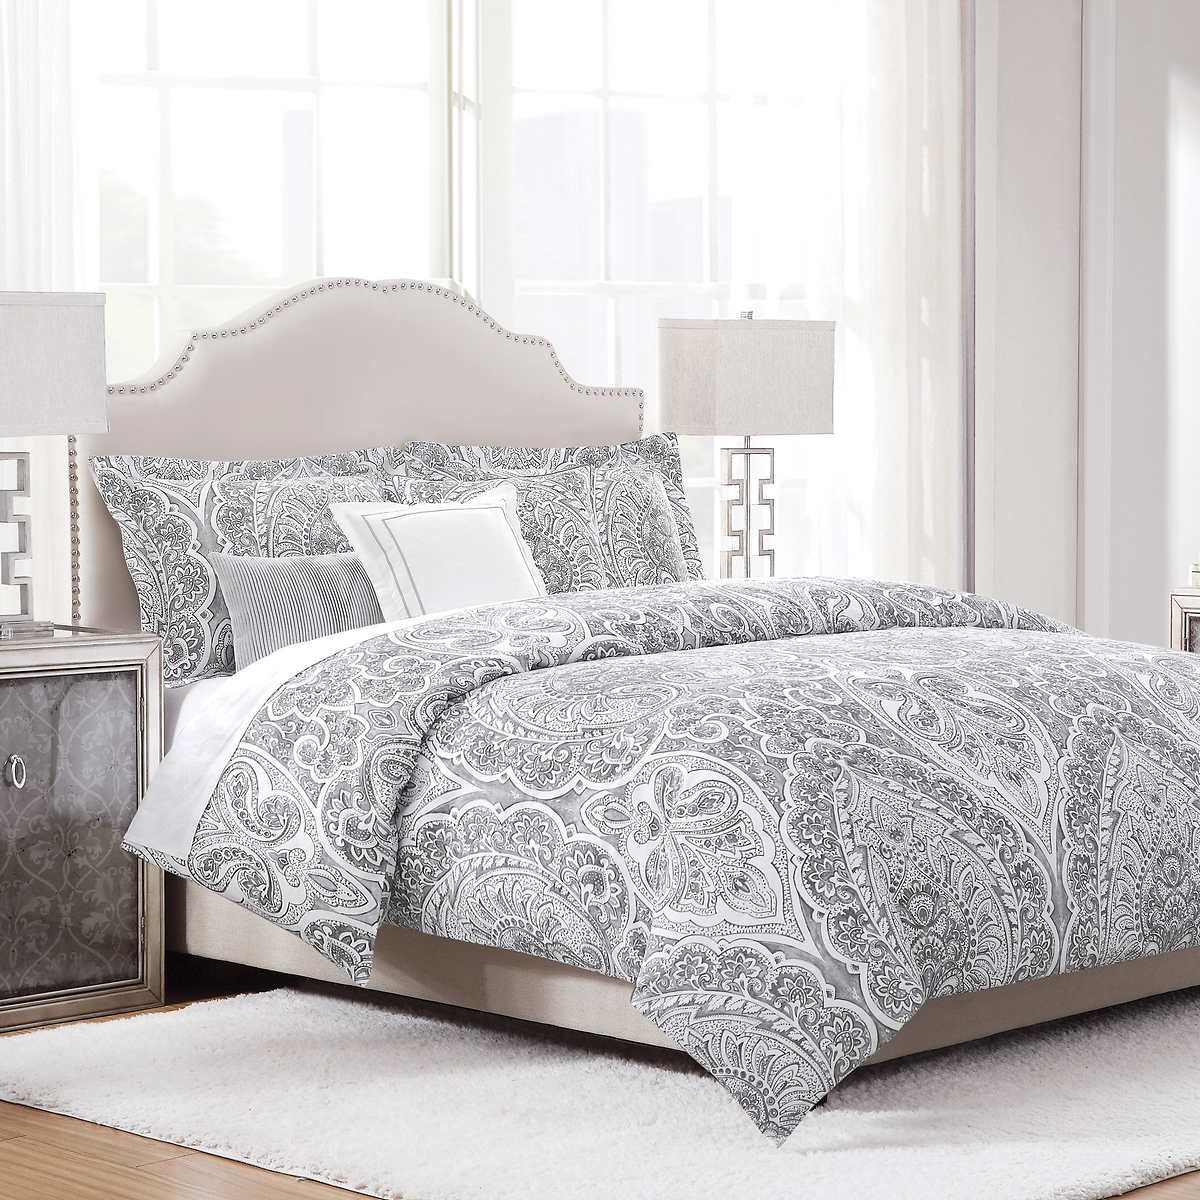 880 Bedroom Sets For Sale Costco Free